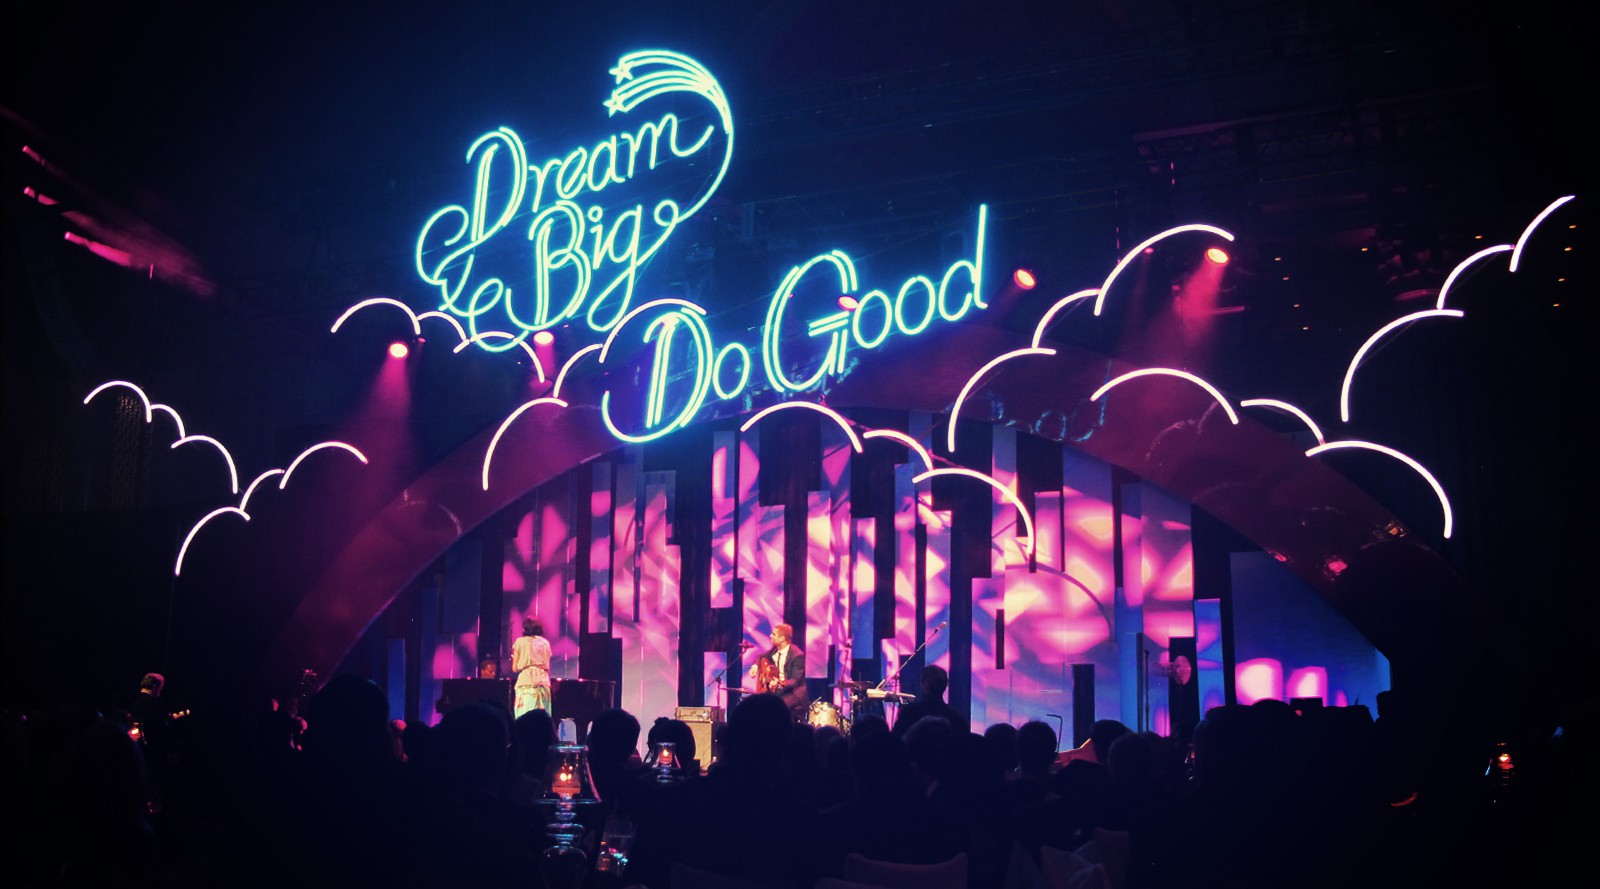 Andreas' illustrated neon lettering was made in to real neon lights specially for the DKMS Delete Blood Cancer charity Gala in New York.